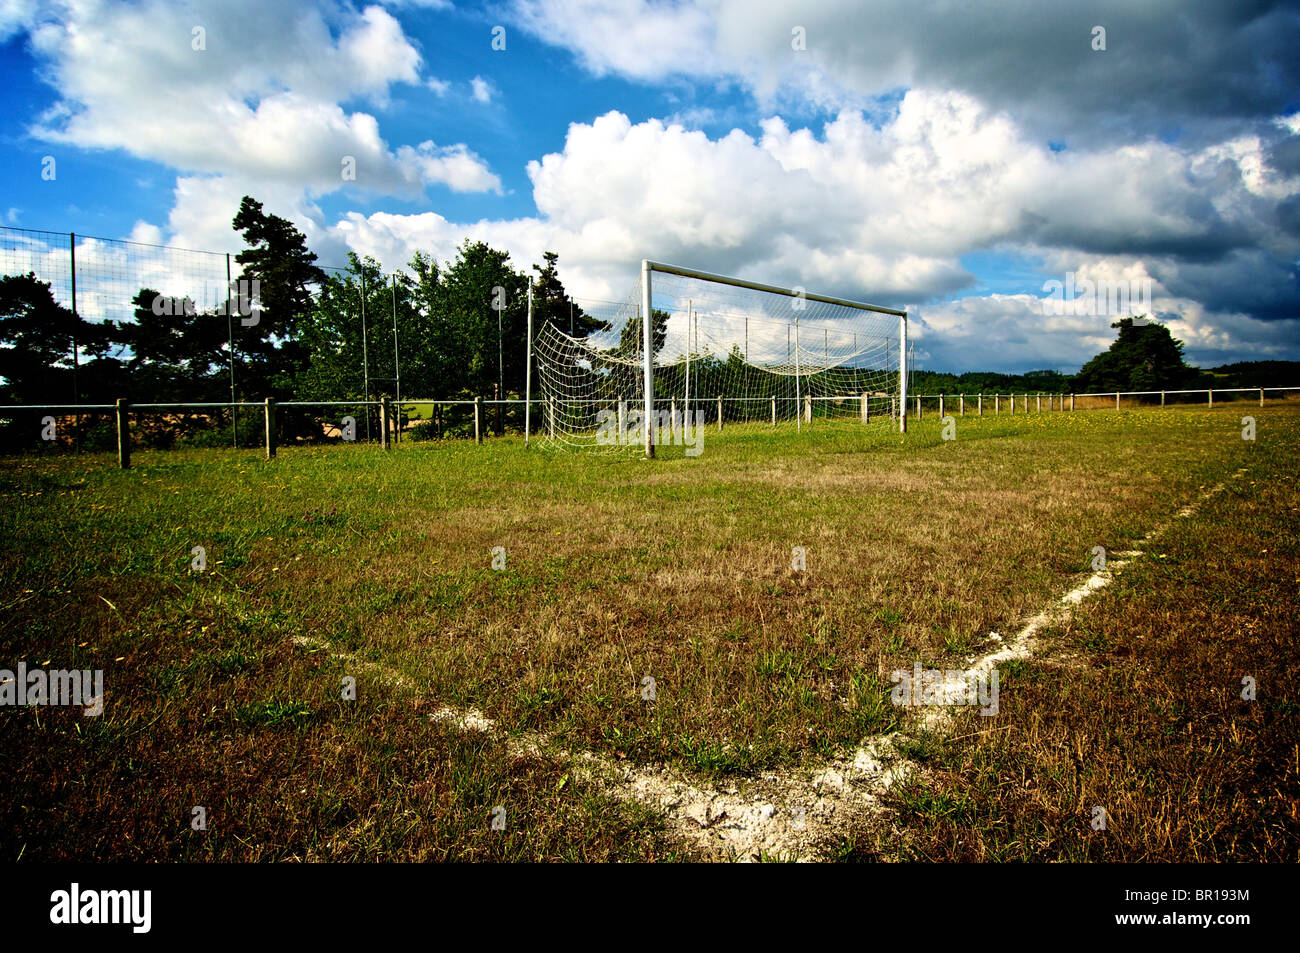 Football pitch and goalpost - Stock Image